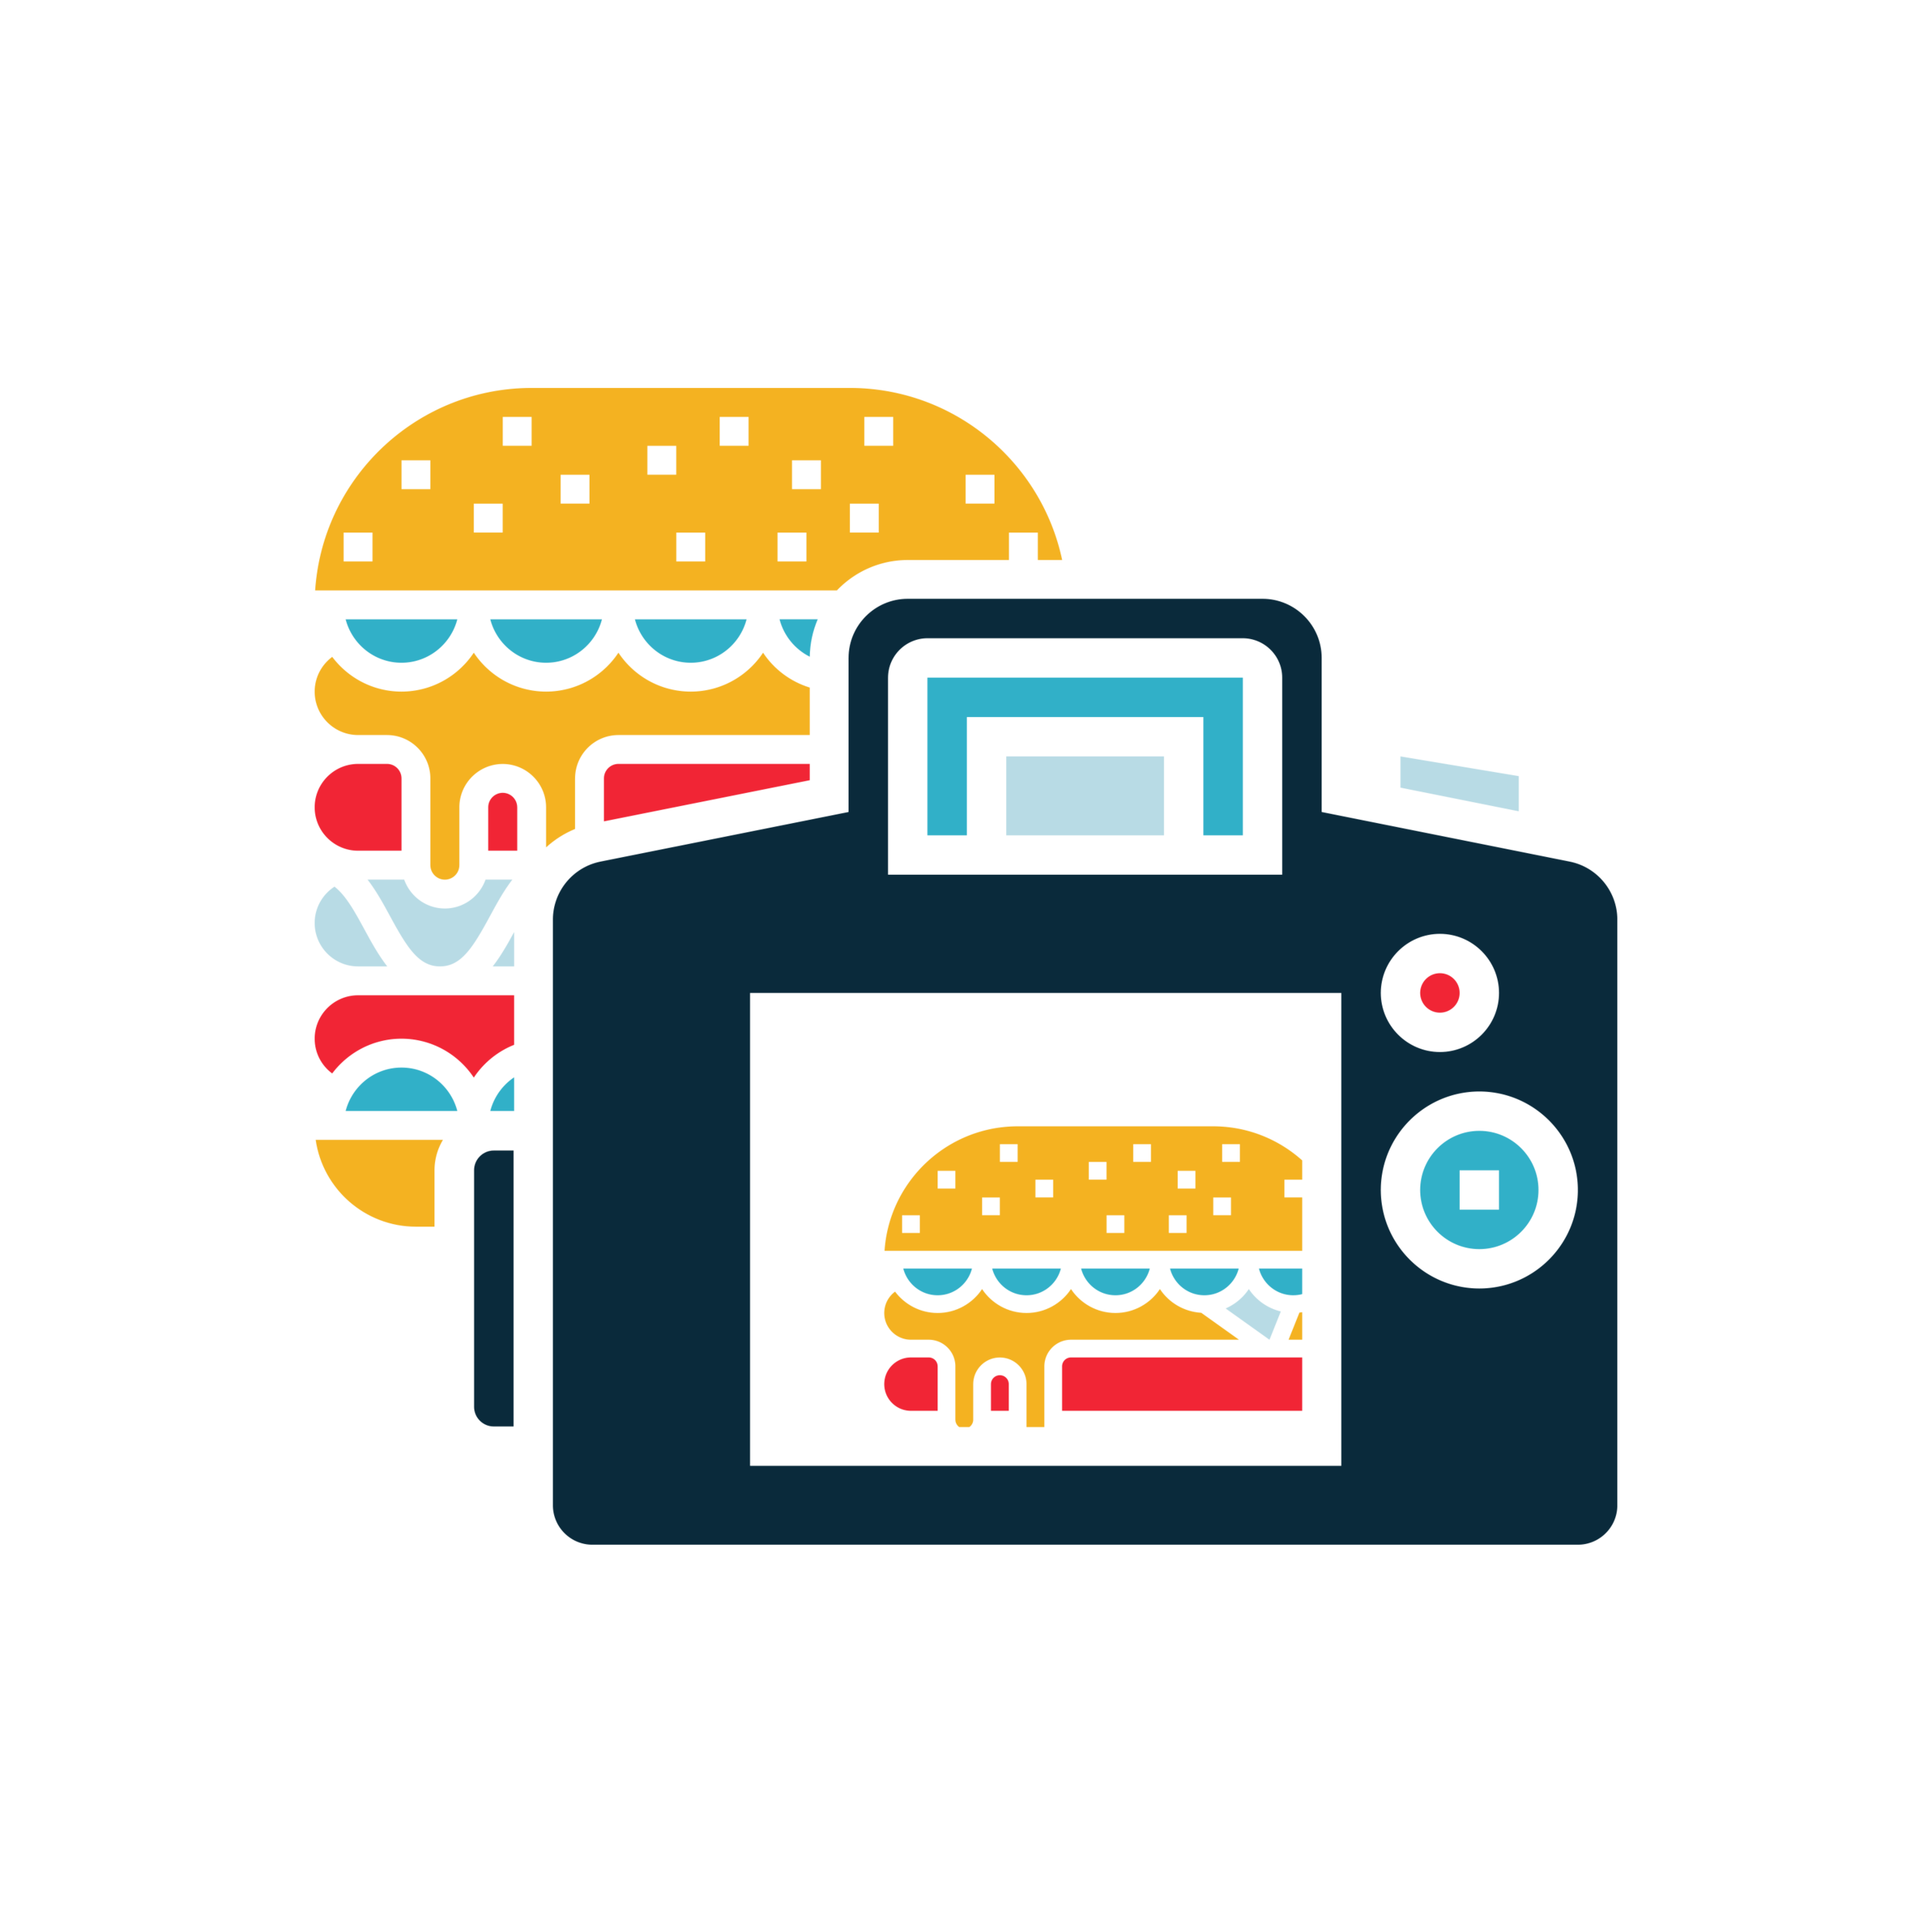 savvy specialists - From culinary-trained food stylists to producers, videographers and photographers who know their way around a kitchen, you'll find a team of professionals who are as passionate about food as they are about making you look good.